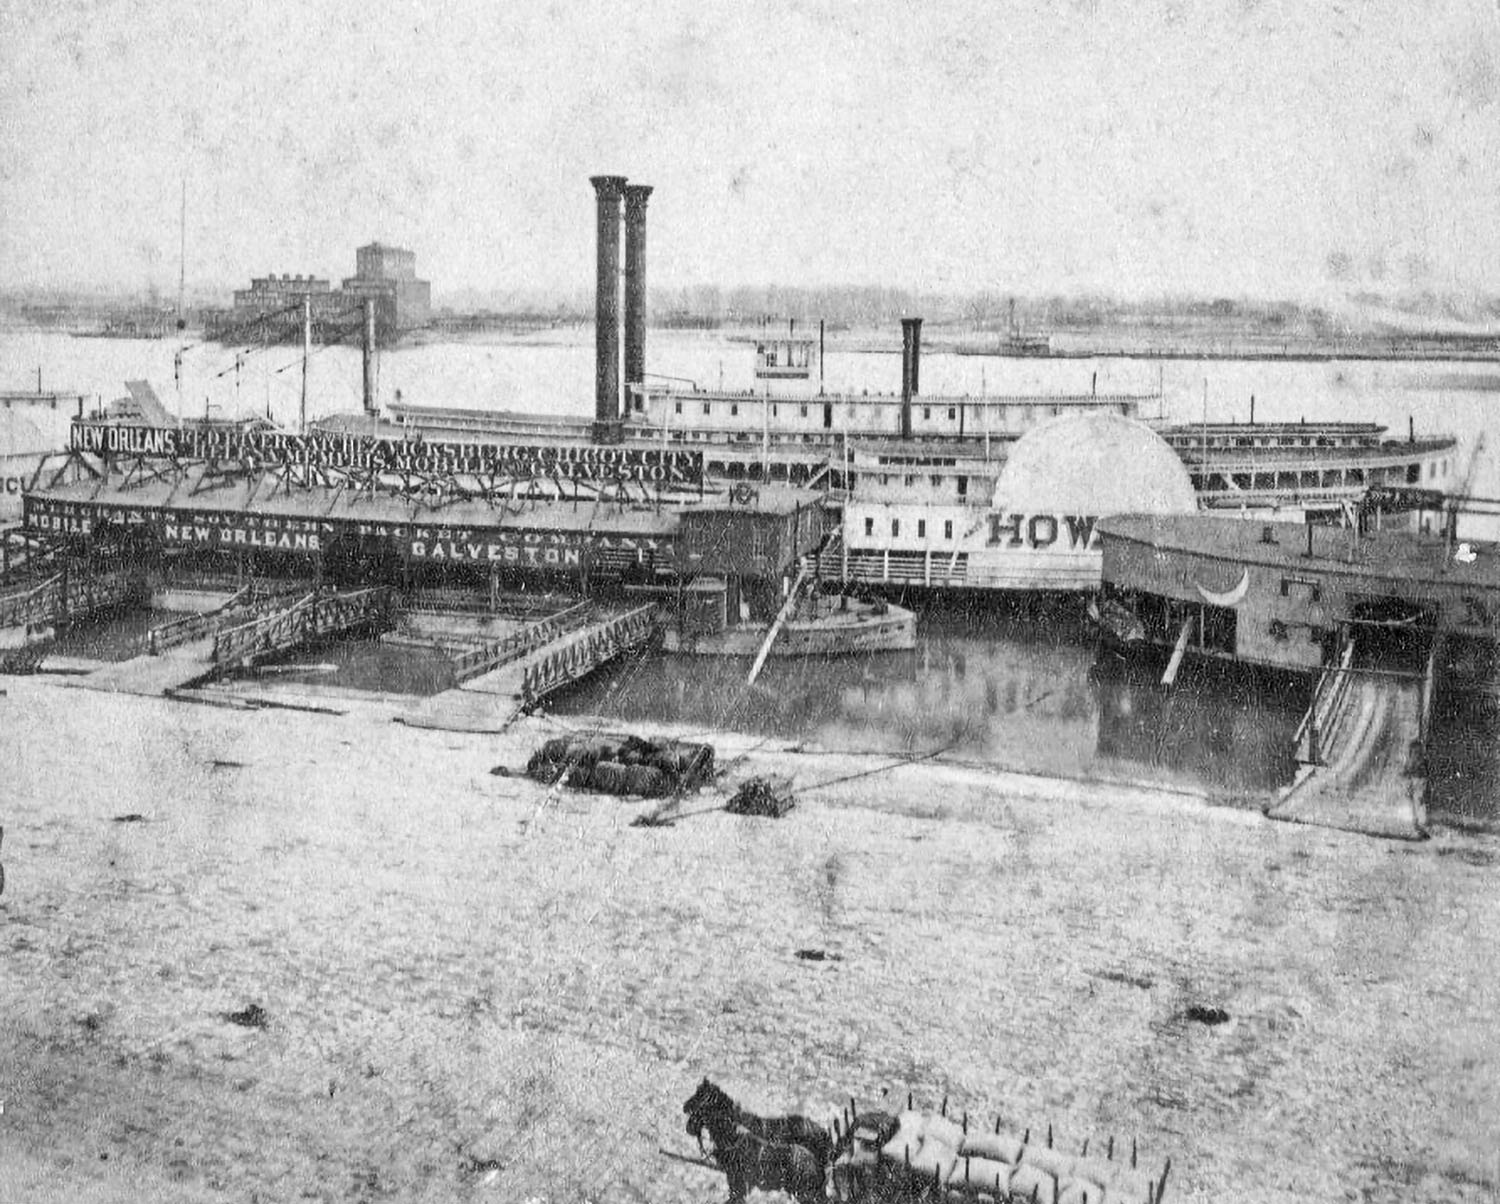 The James Howard at a St. Louis wharfboat in the 1870s. (Keith Norrington collection)